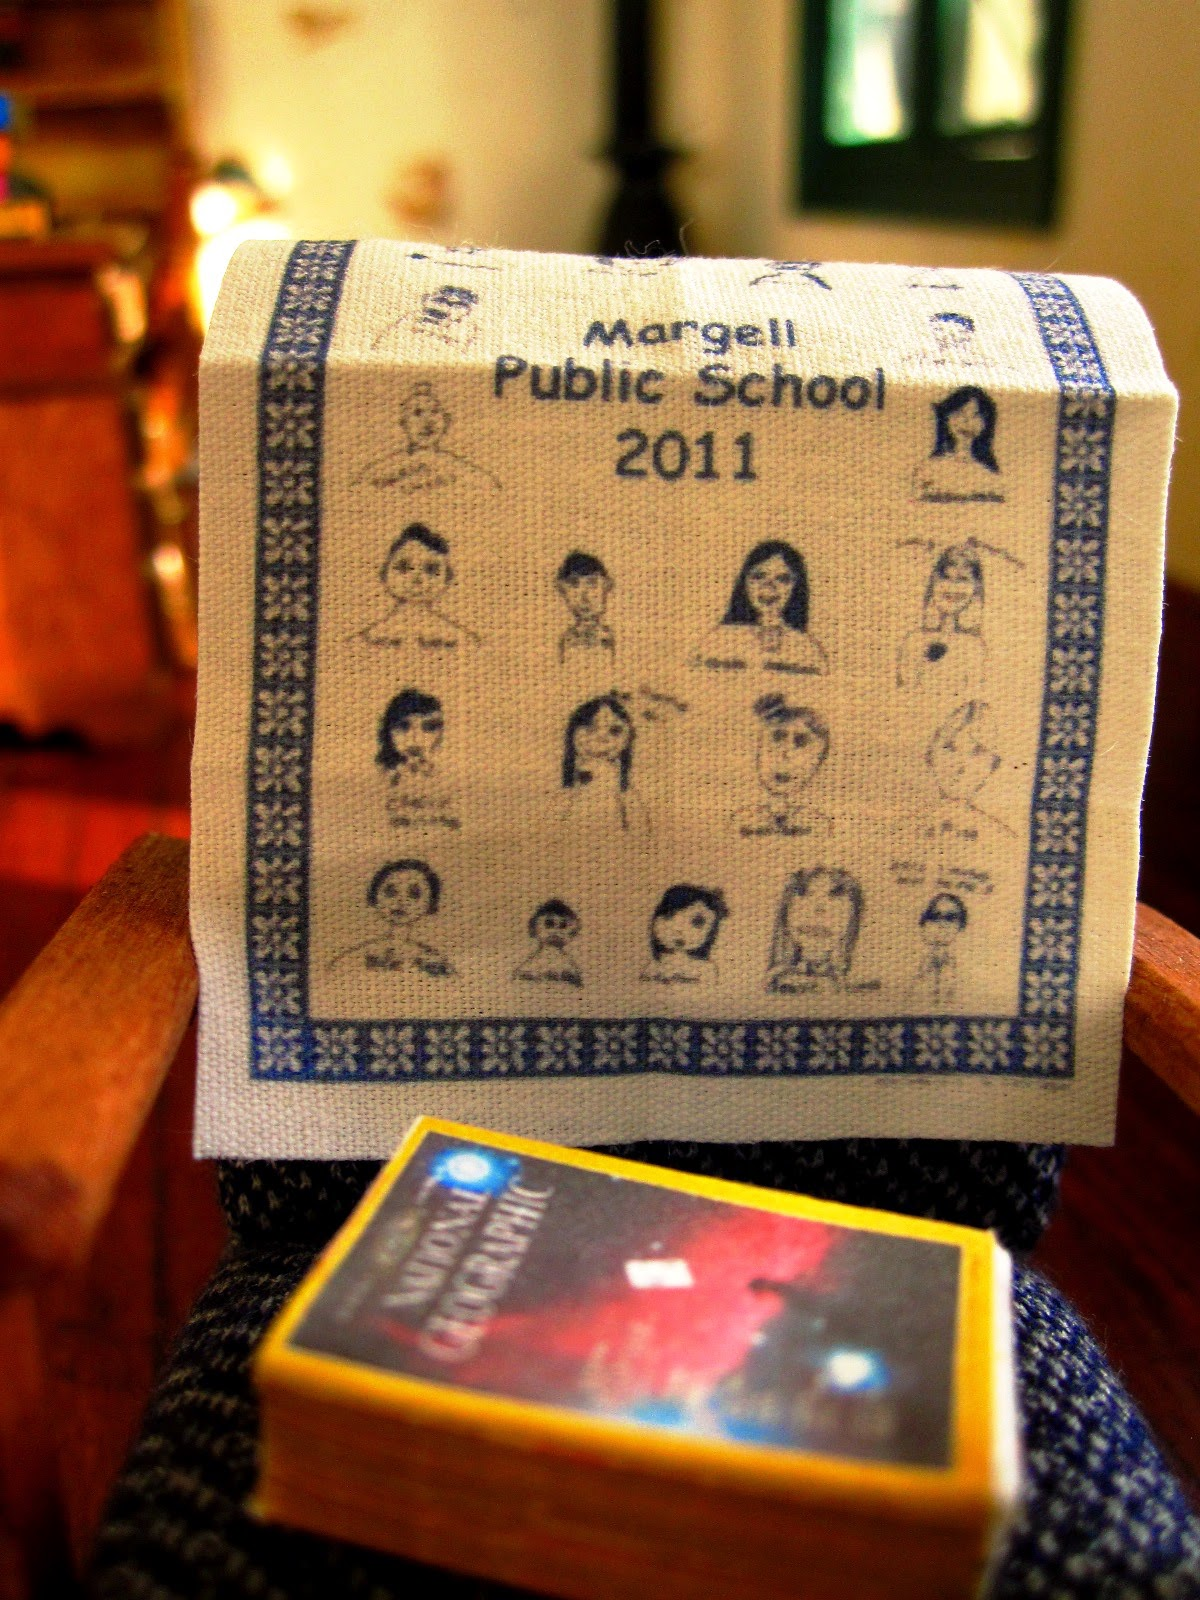 Close up of a 1950s-style miniature chair, displaying a 2011 fund-raising tea towel for Margell Public School and a stack of old National Geographic magazines.